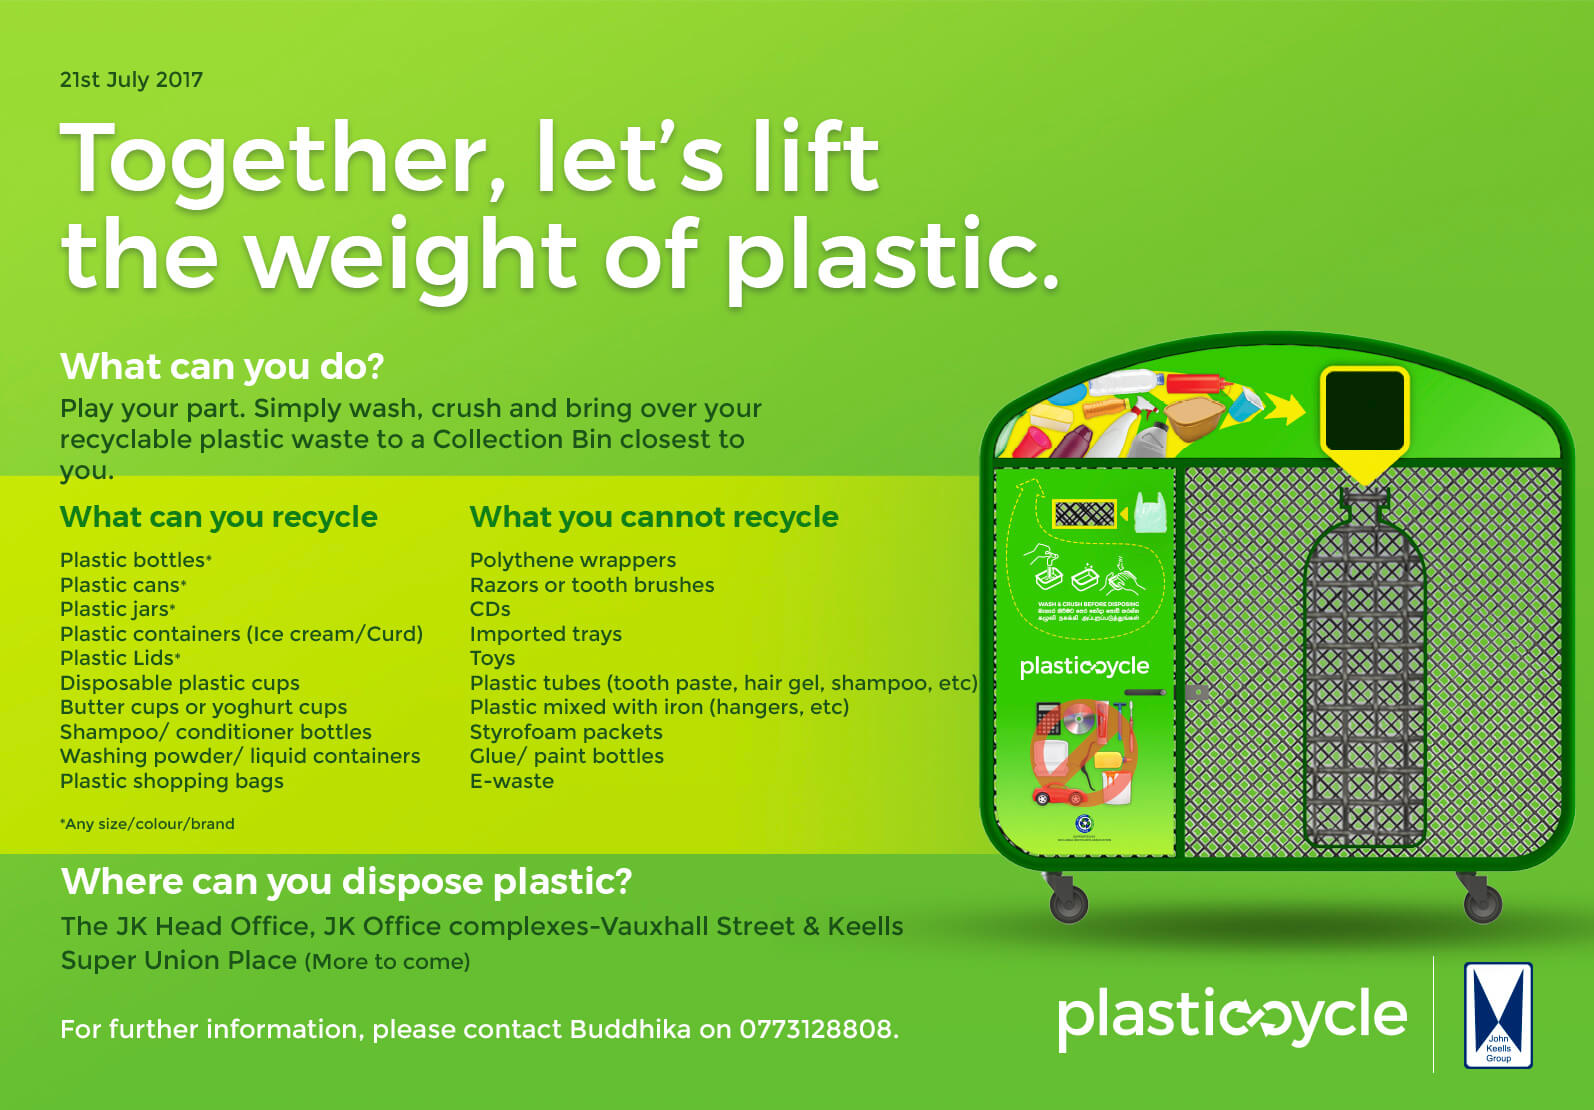 Plastic-cycle! We've launched a pilot-project in Colombo 02 (Wekanda/Hunupitiya CMC wards)